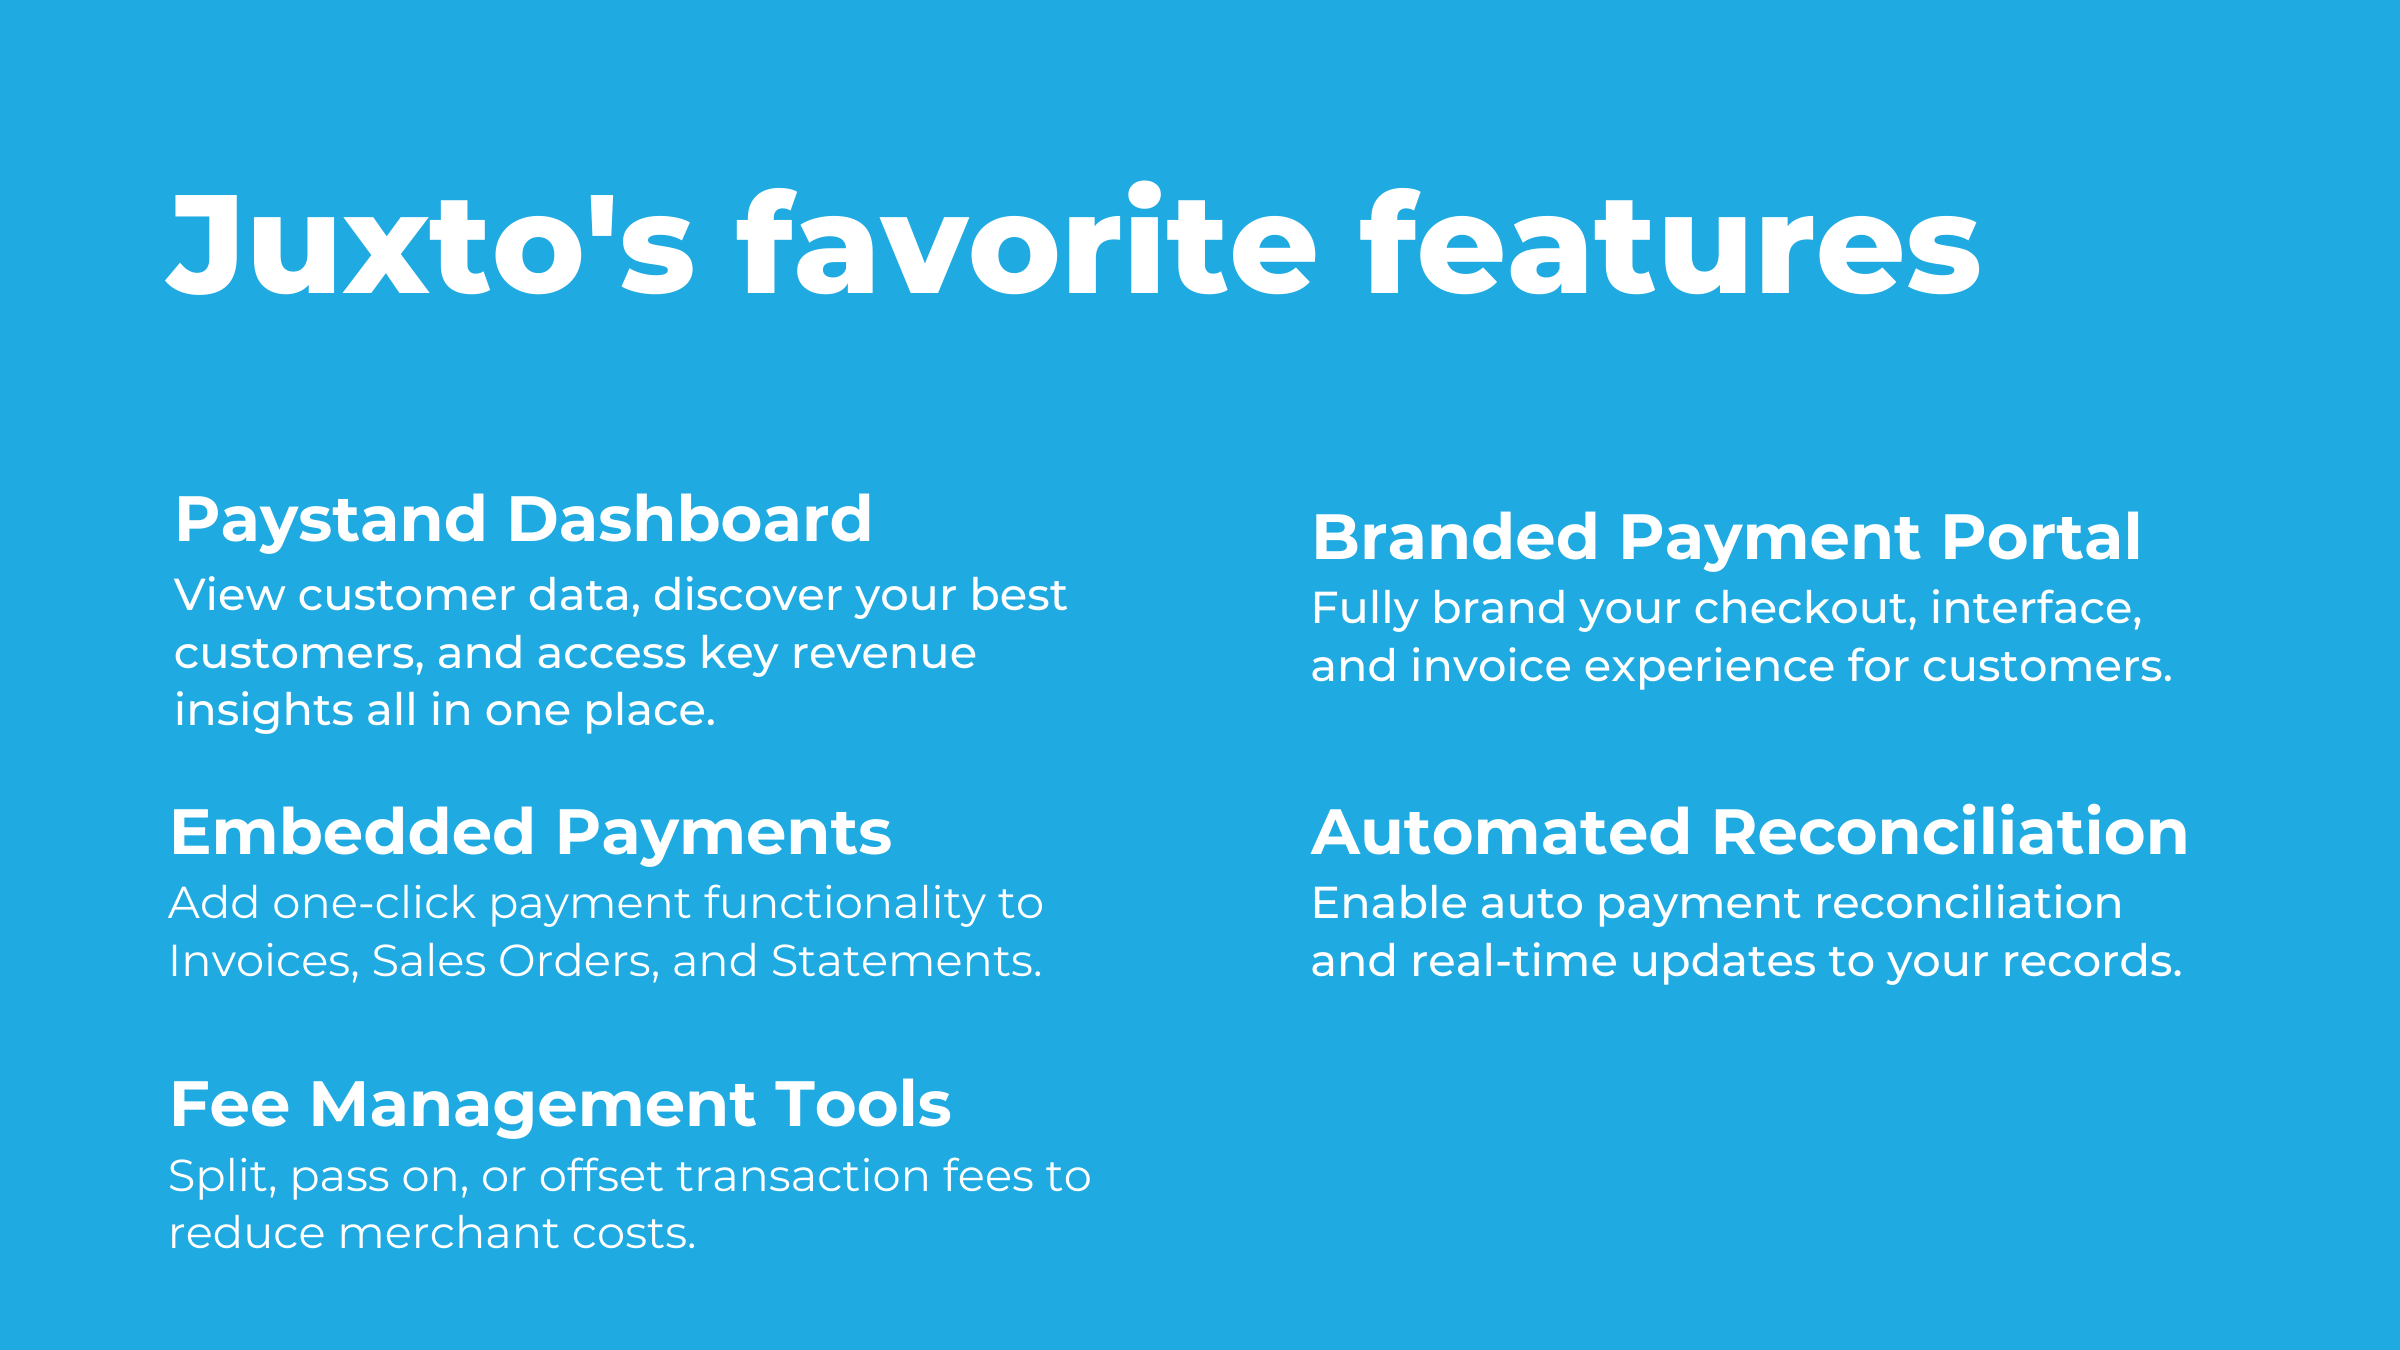 Juxto favorite features paystand